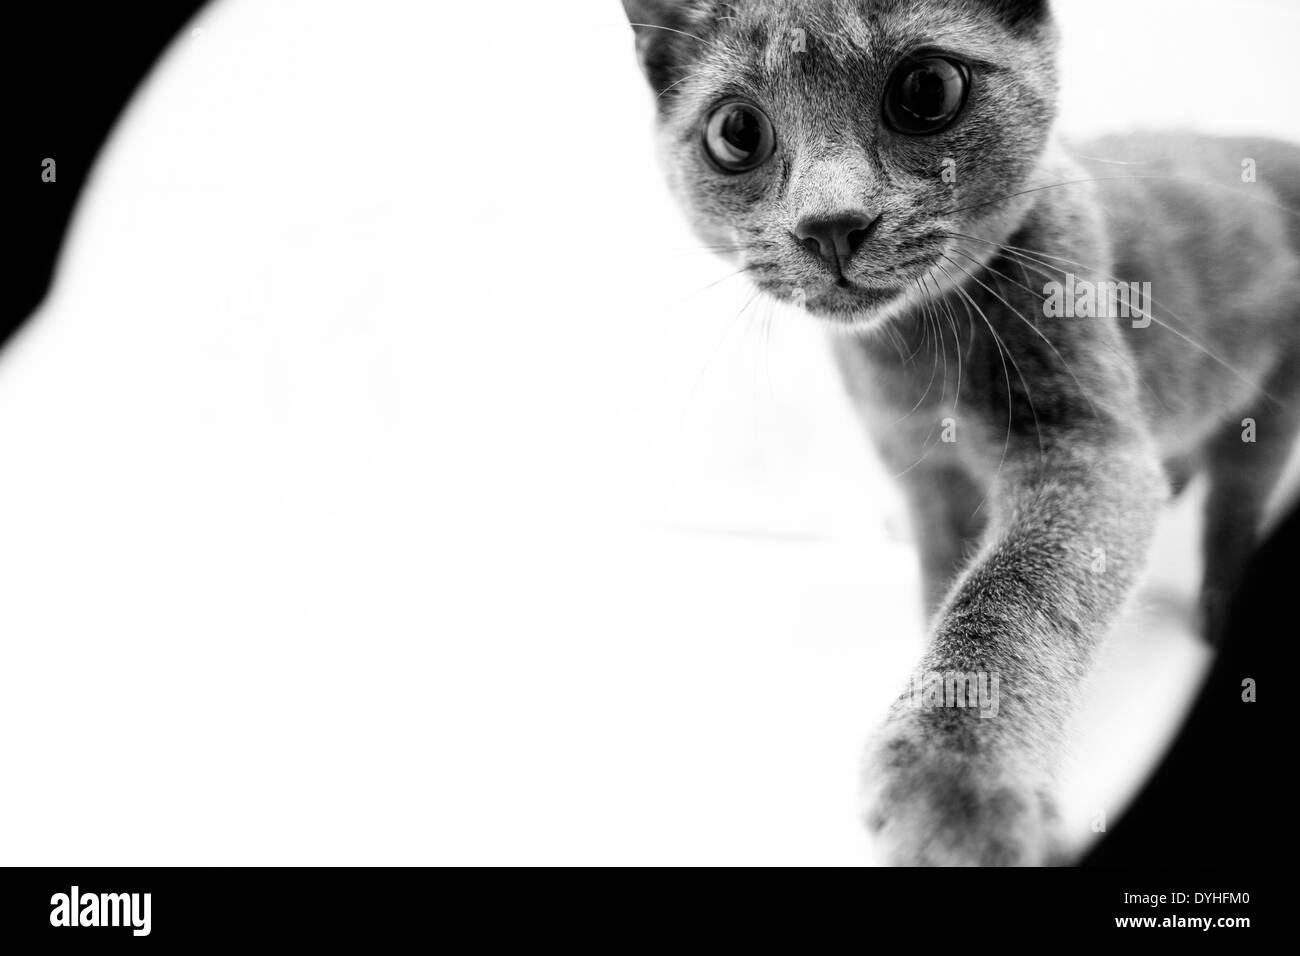 A gray cat in white background - Stock Image